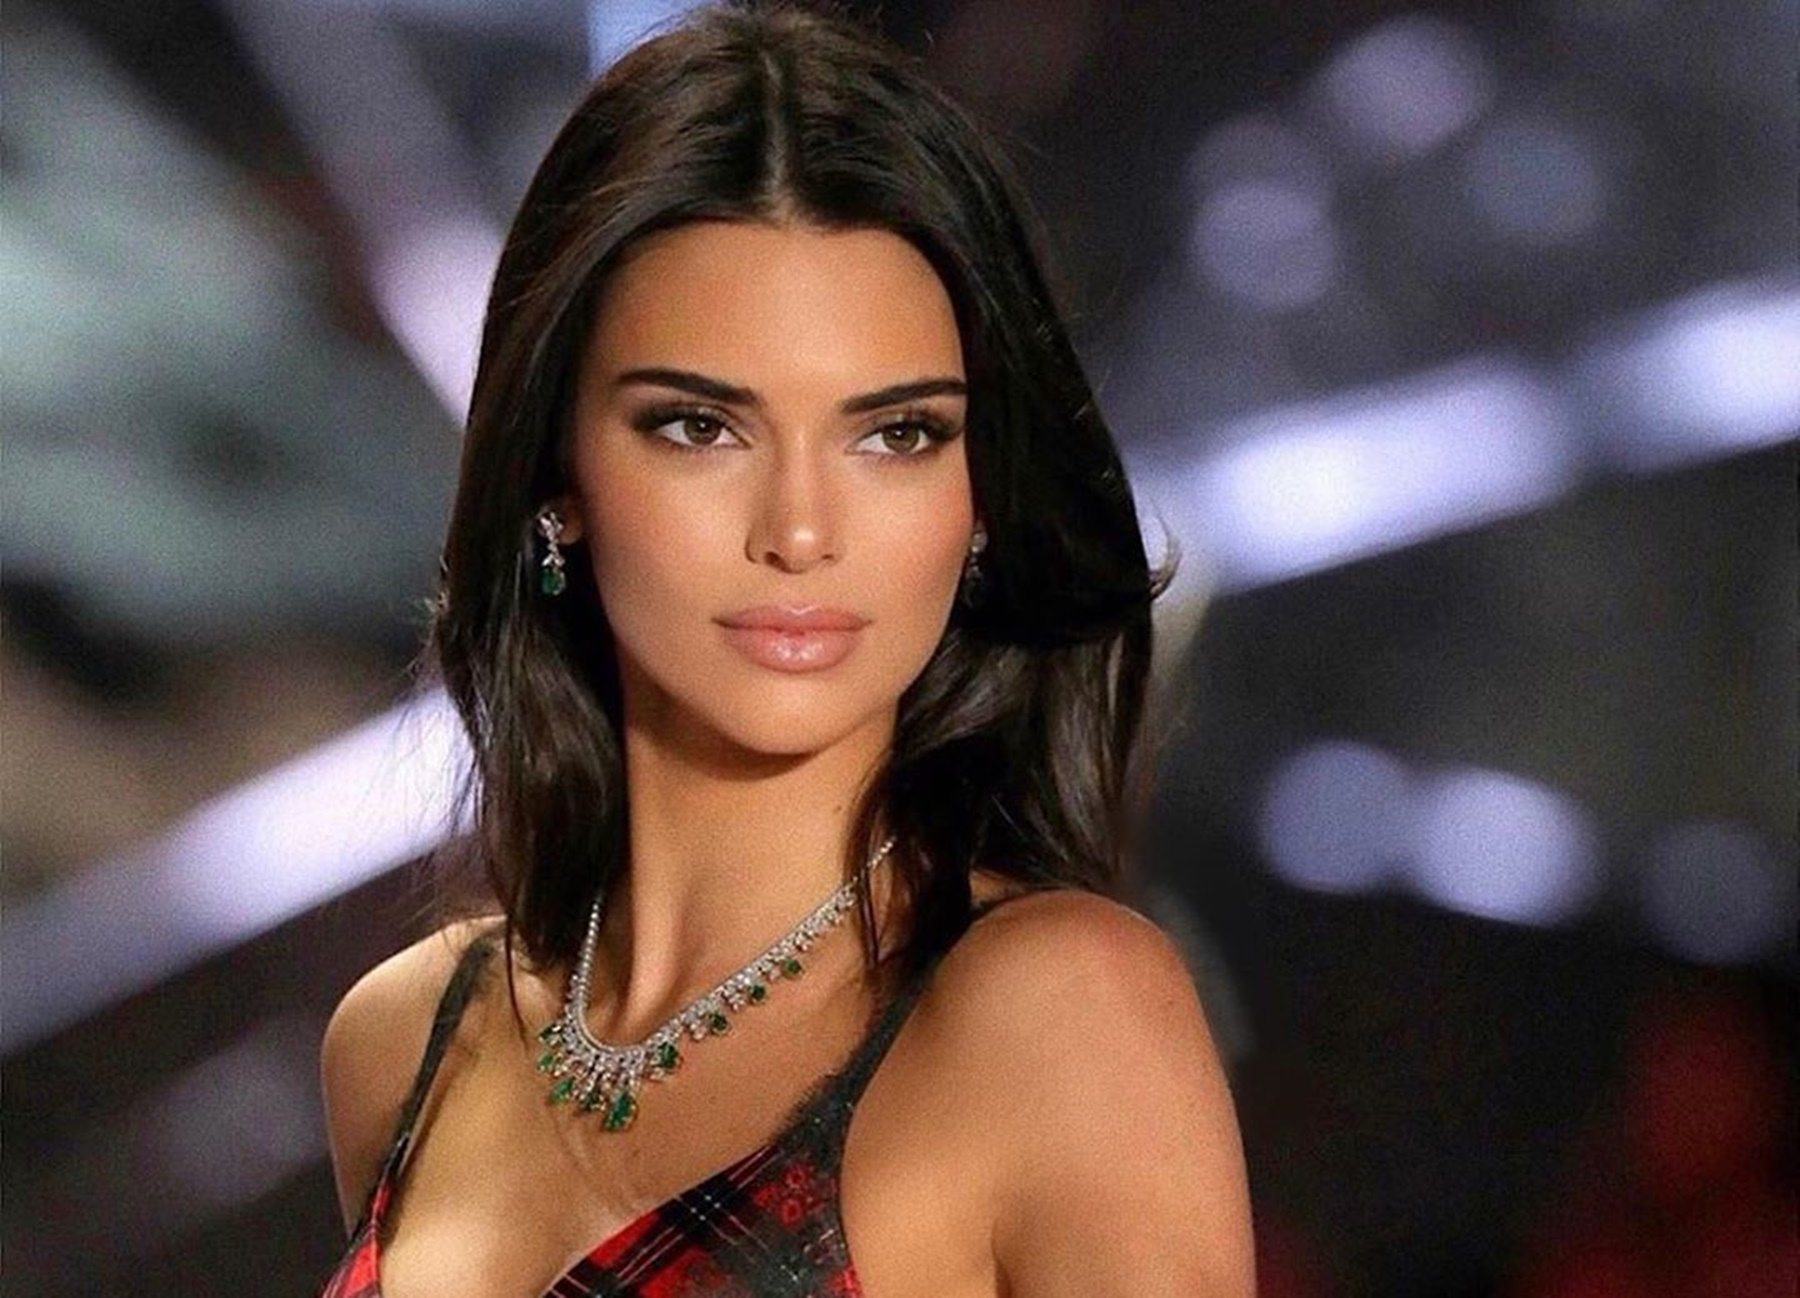 """""""kendall-jenner-shows-off-her-perfect-figure-in-new-pictures-that-might-convince-ben-simmons-to-beg-for-another-chance-check-why-luka-sabbat-is-now-in-the-mix"""""""